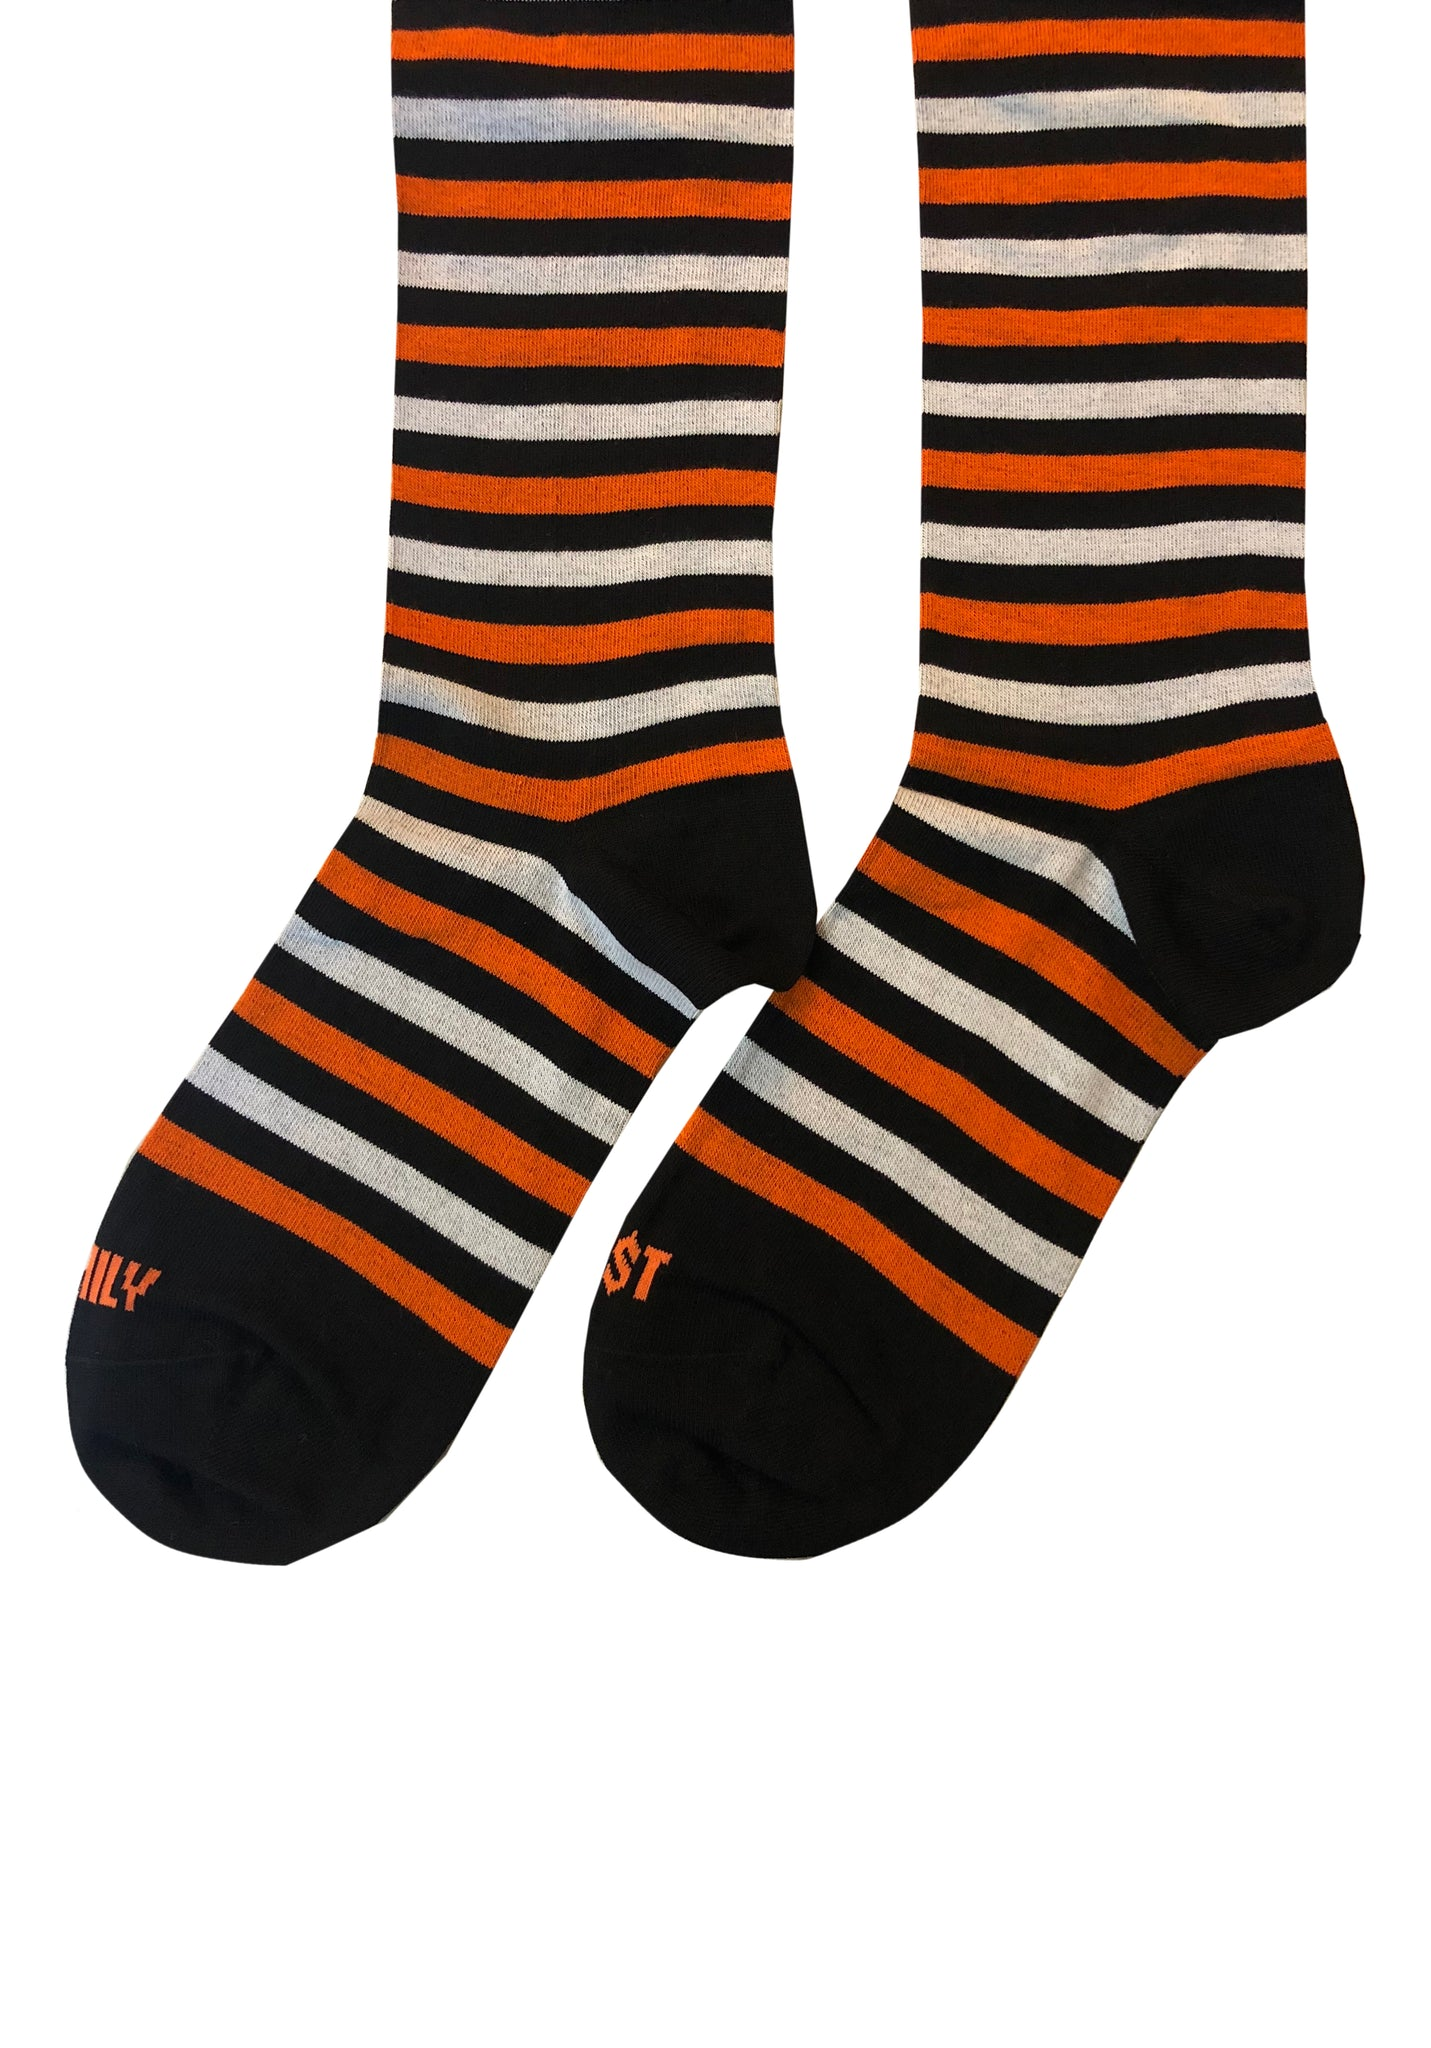 Striped Long Socks Orange Black